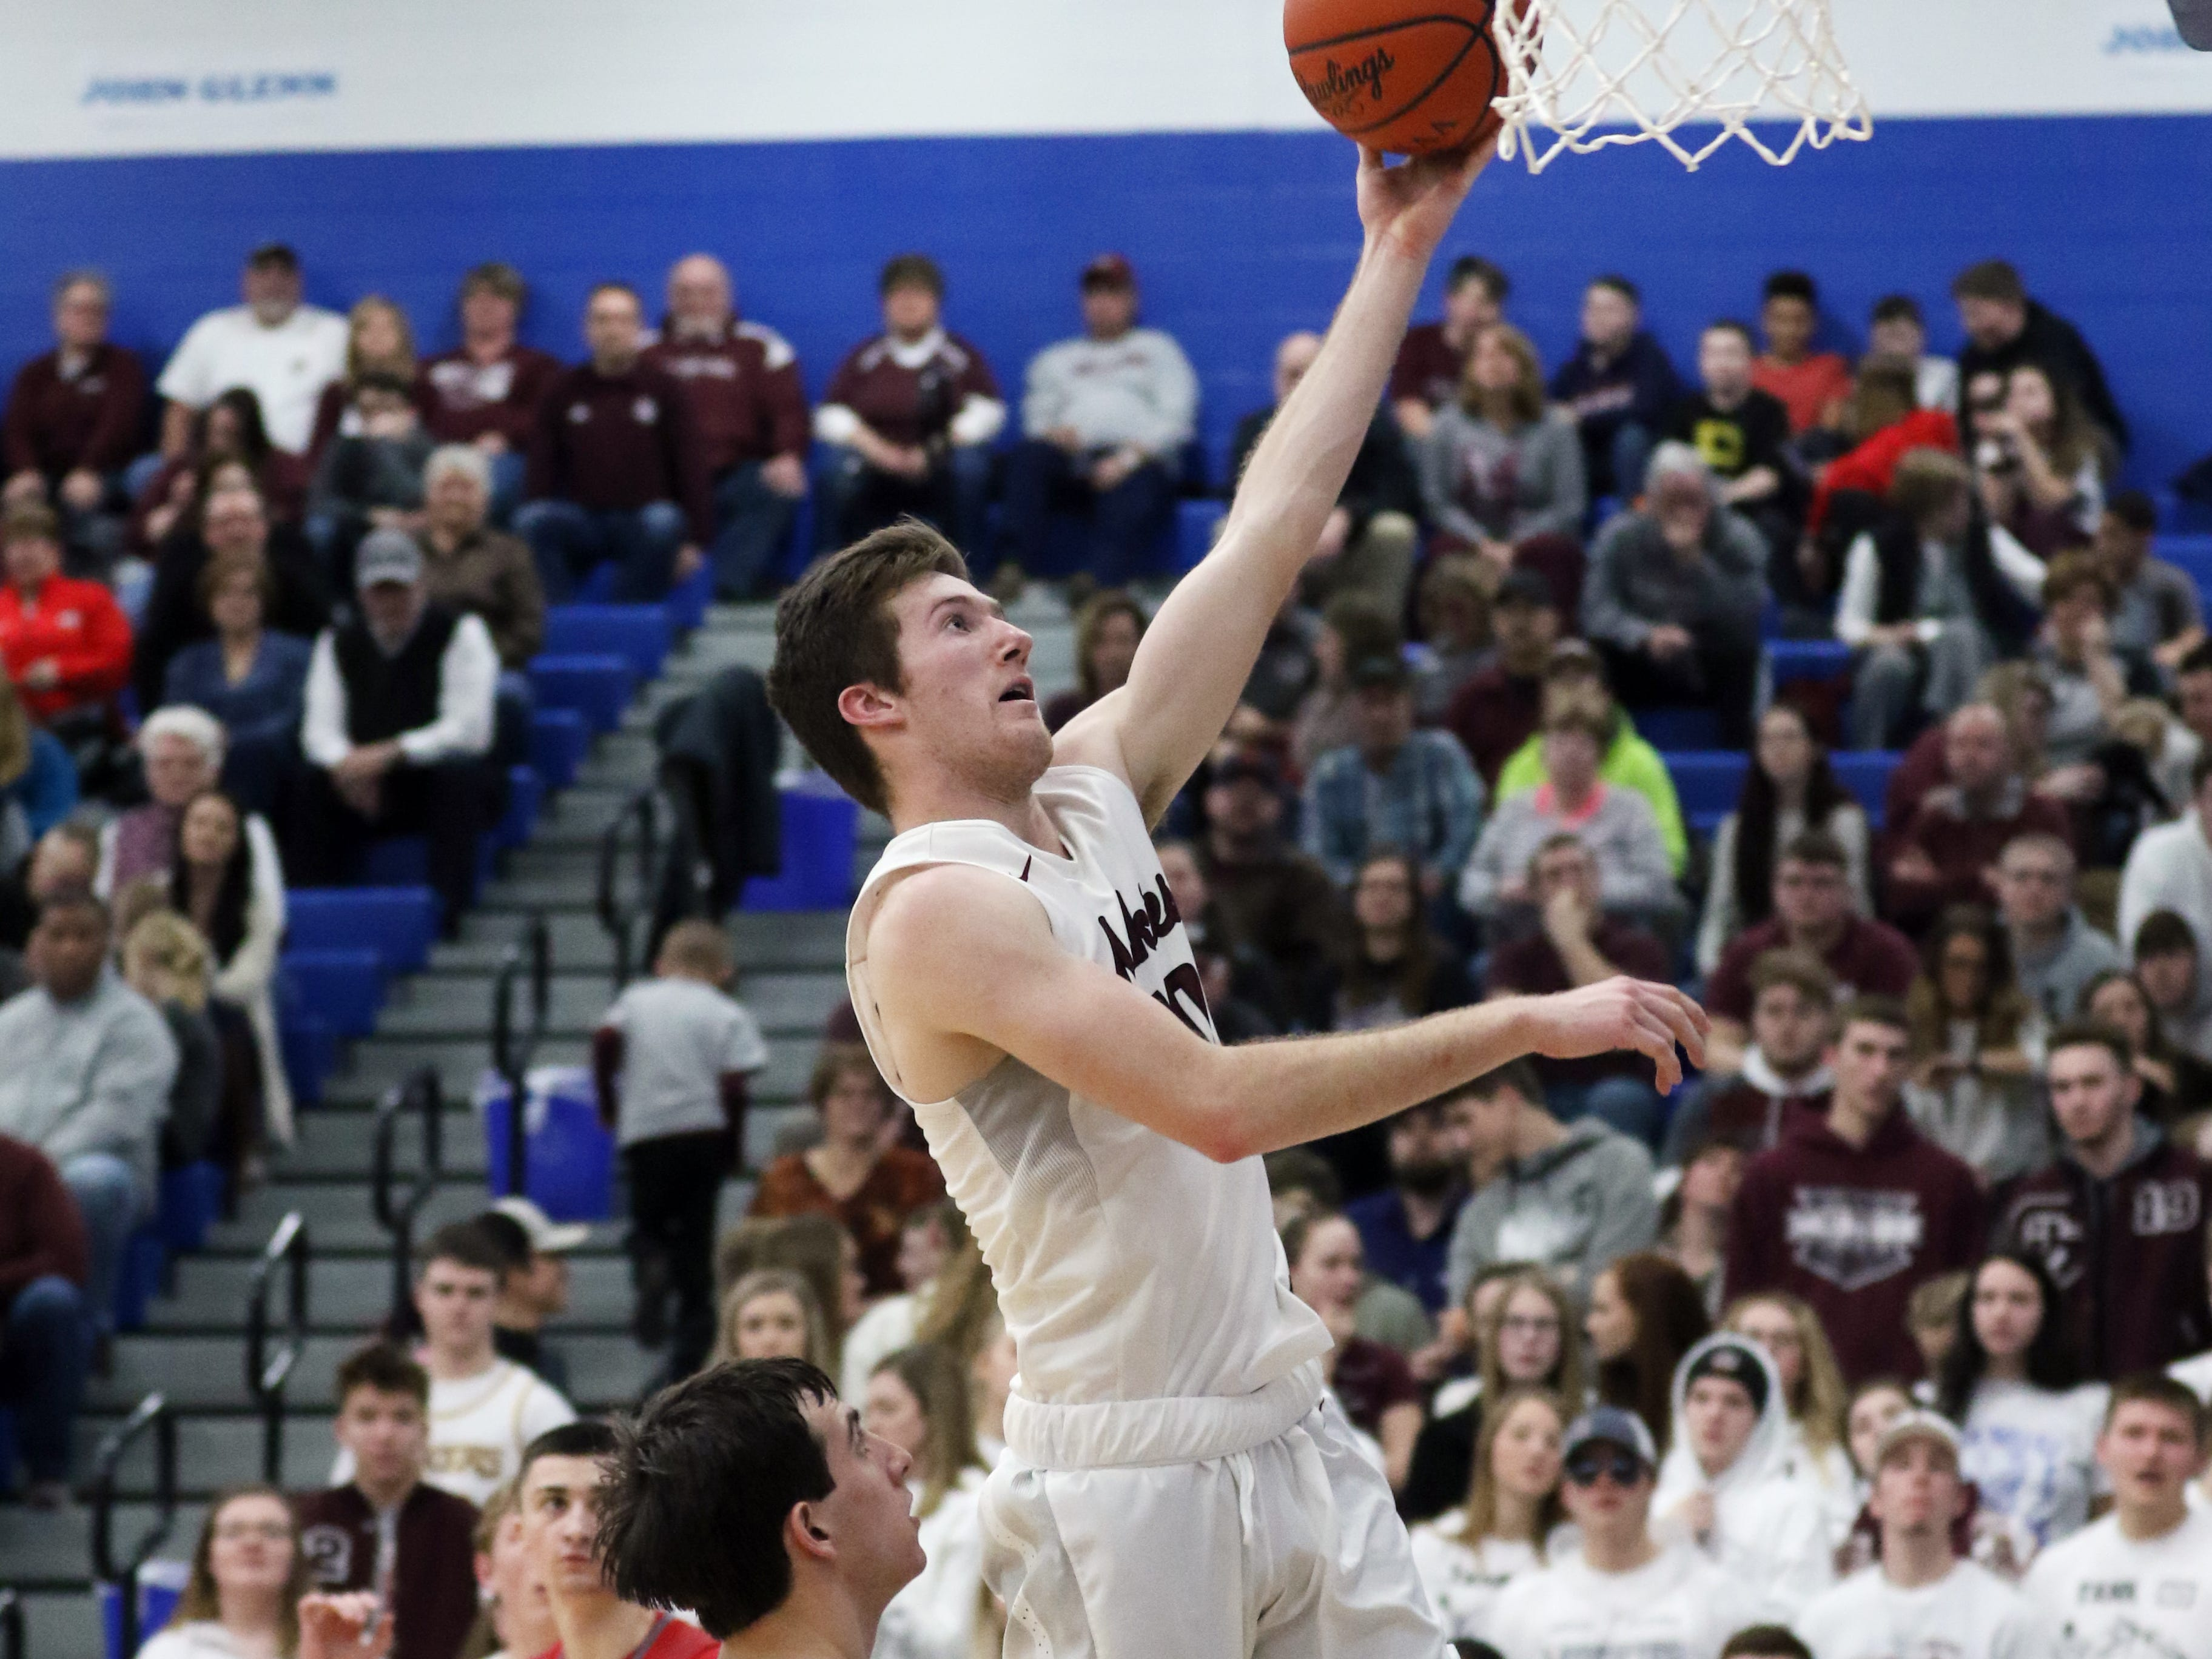 John Glenn's Josh Raley puts up a shot against St. Clairsville late in the Muskies' 70-52 win over the Red Devils at Cambridge High School Wednesday night.